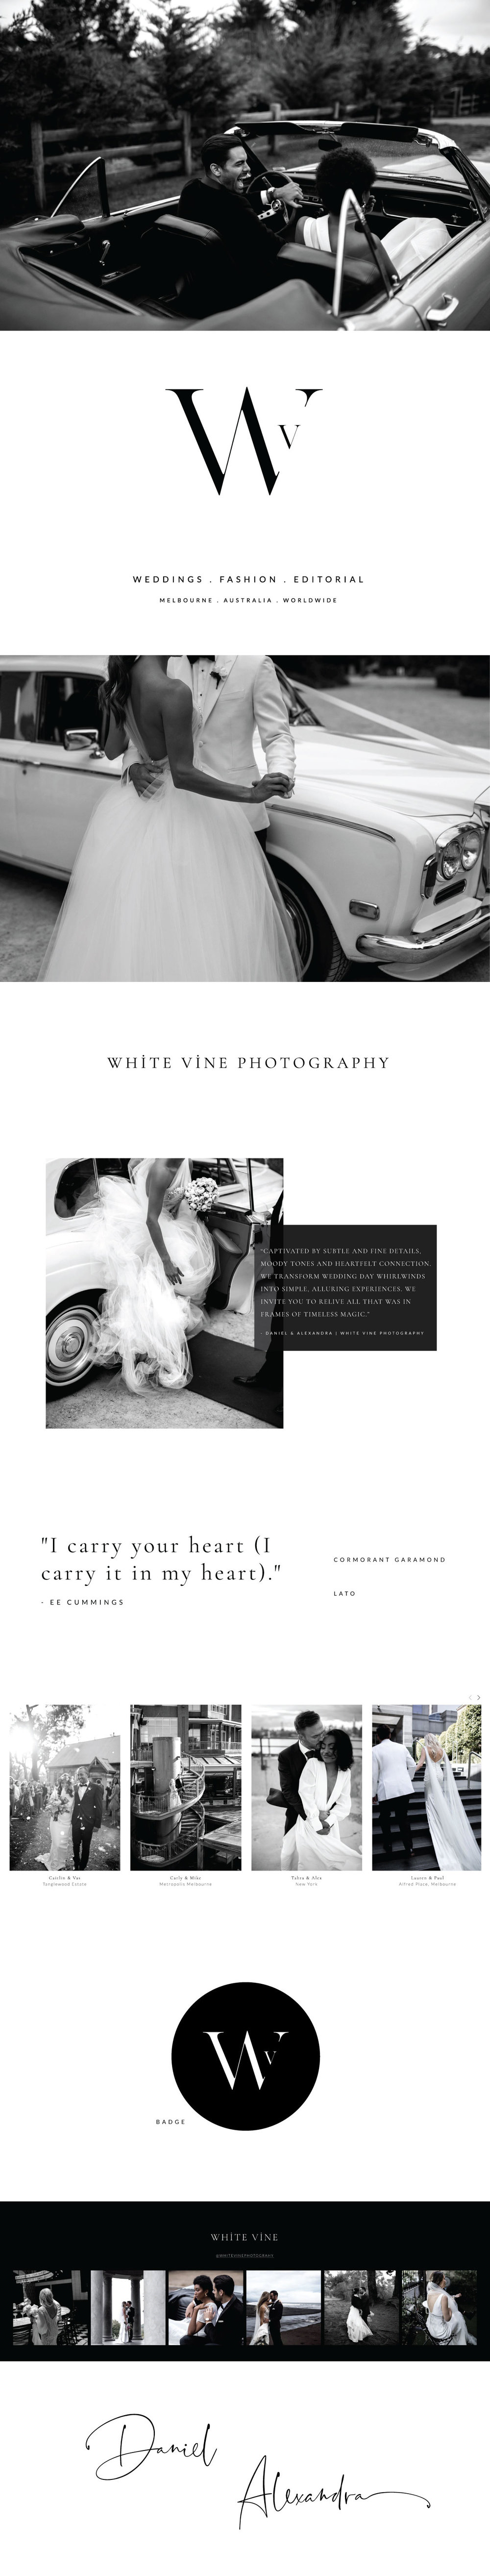 IMO-CREATIVE-Branding-and-Squarespace-Website-Design-Melbourne-White-Vine-Photography---wedding-Photographers-2.jpg